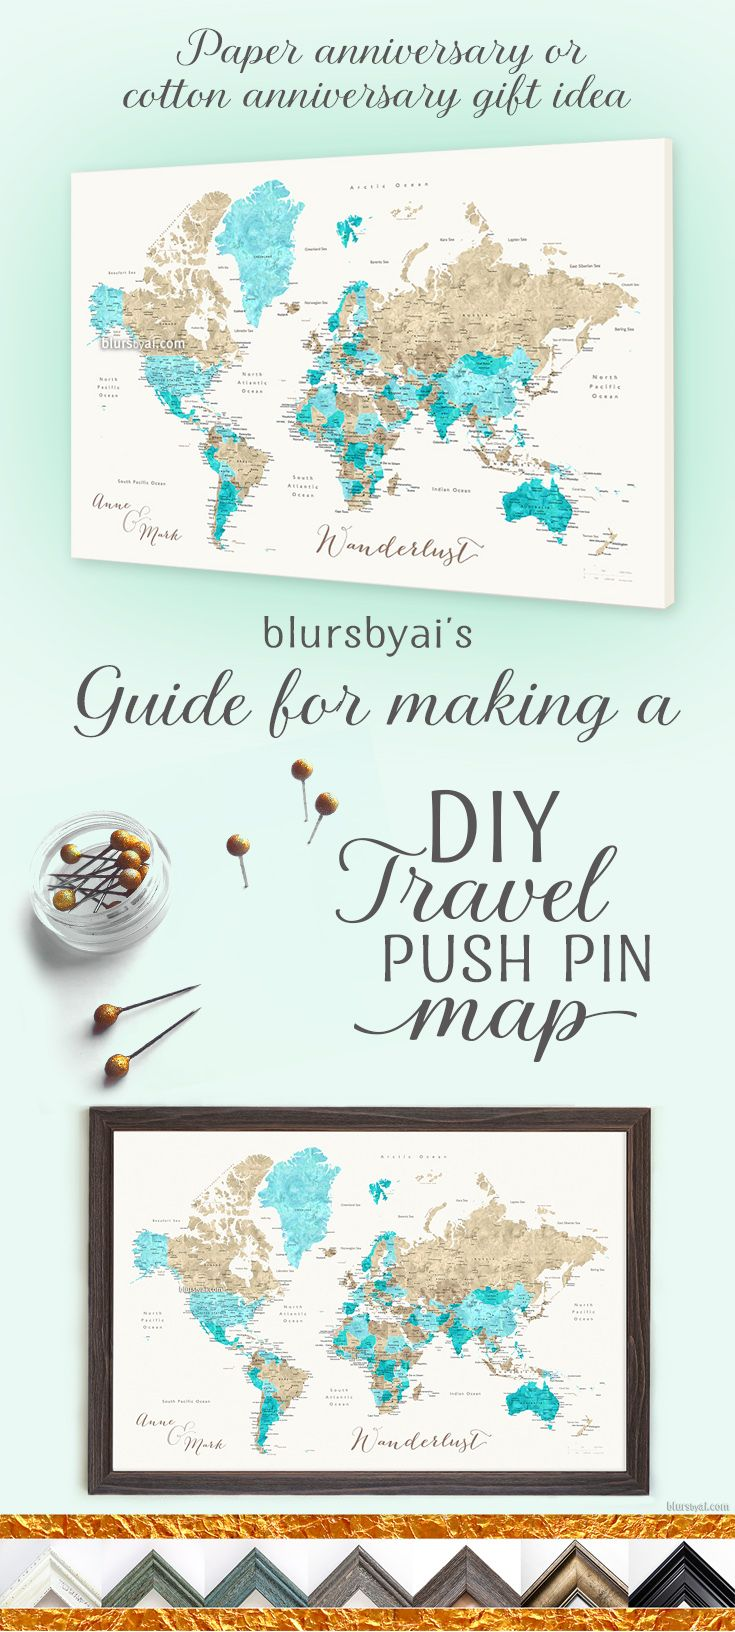 Pin on Traveling the world Making A Map With Pins on framed world travel map pins, map with coins, map push pins, map with states, map with clocks, map with key, wall map pins, large map pins, map with names, map with markers, map clip art, map pin icon, map with grid, map with labels, map with mountains, map with compass, map with title, map with flags, map logo, map with pencil,